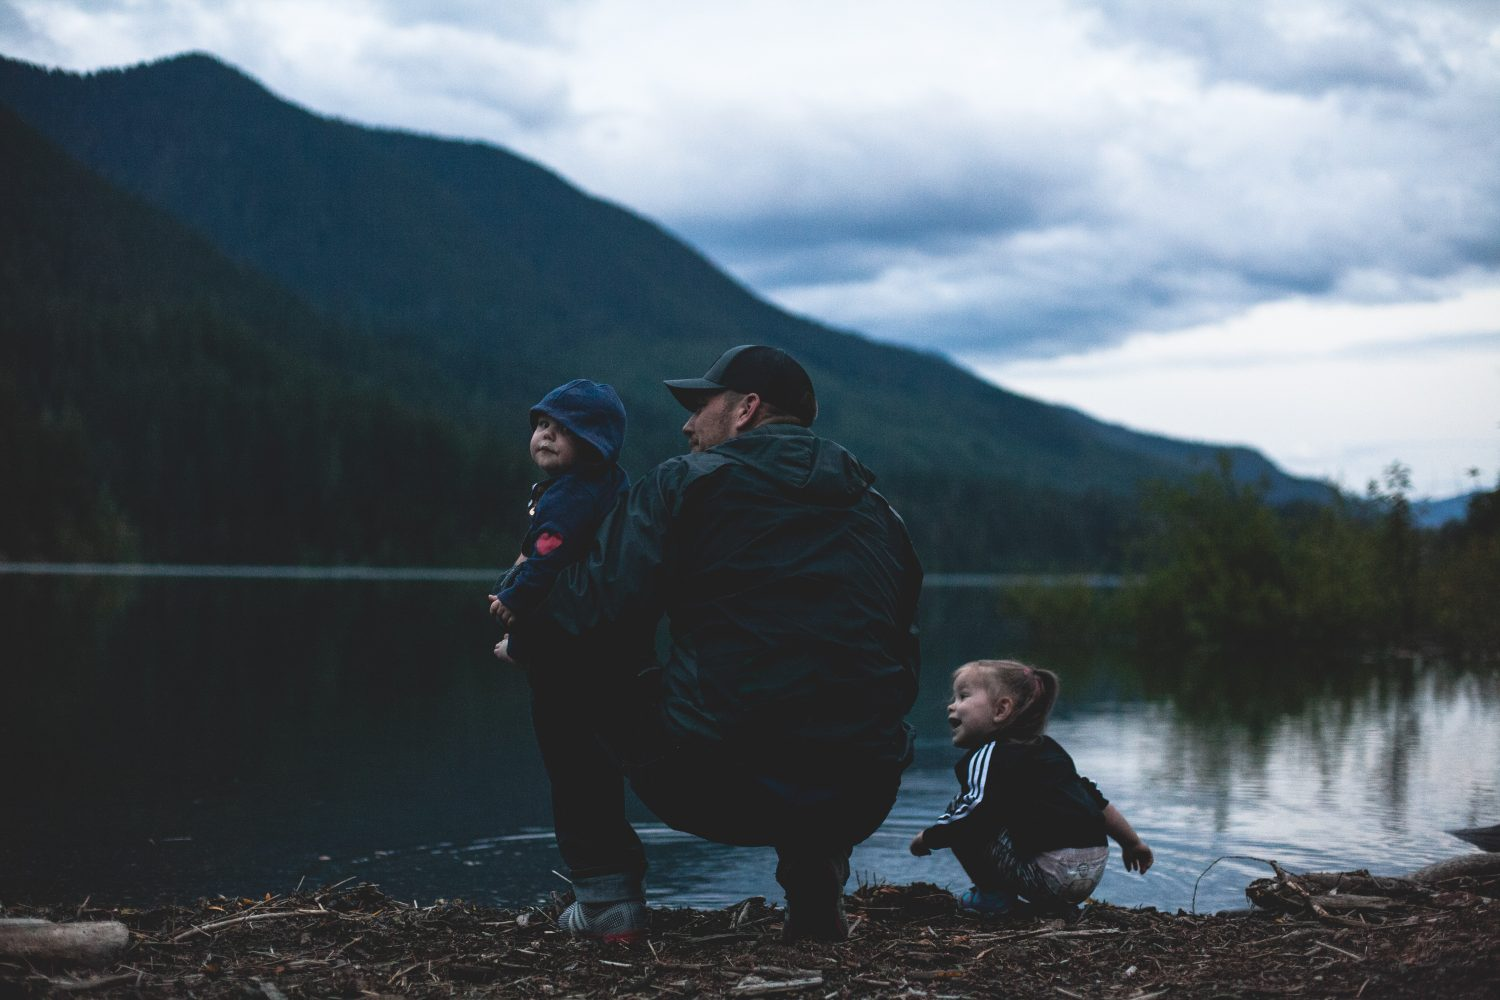 Man with two children near a lake with a mountain